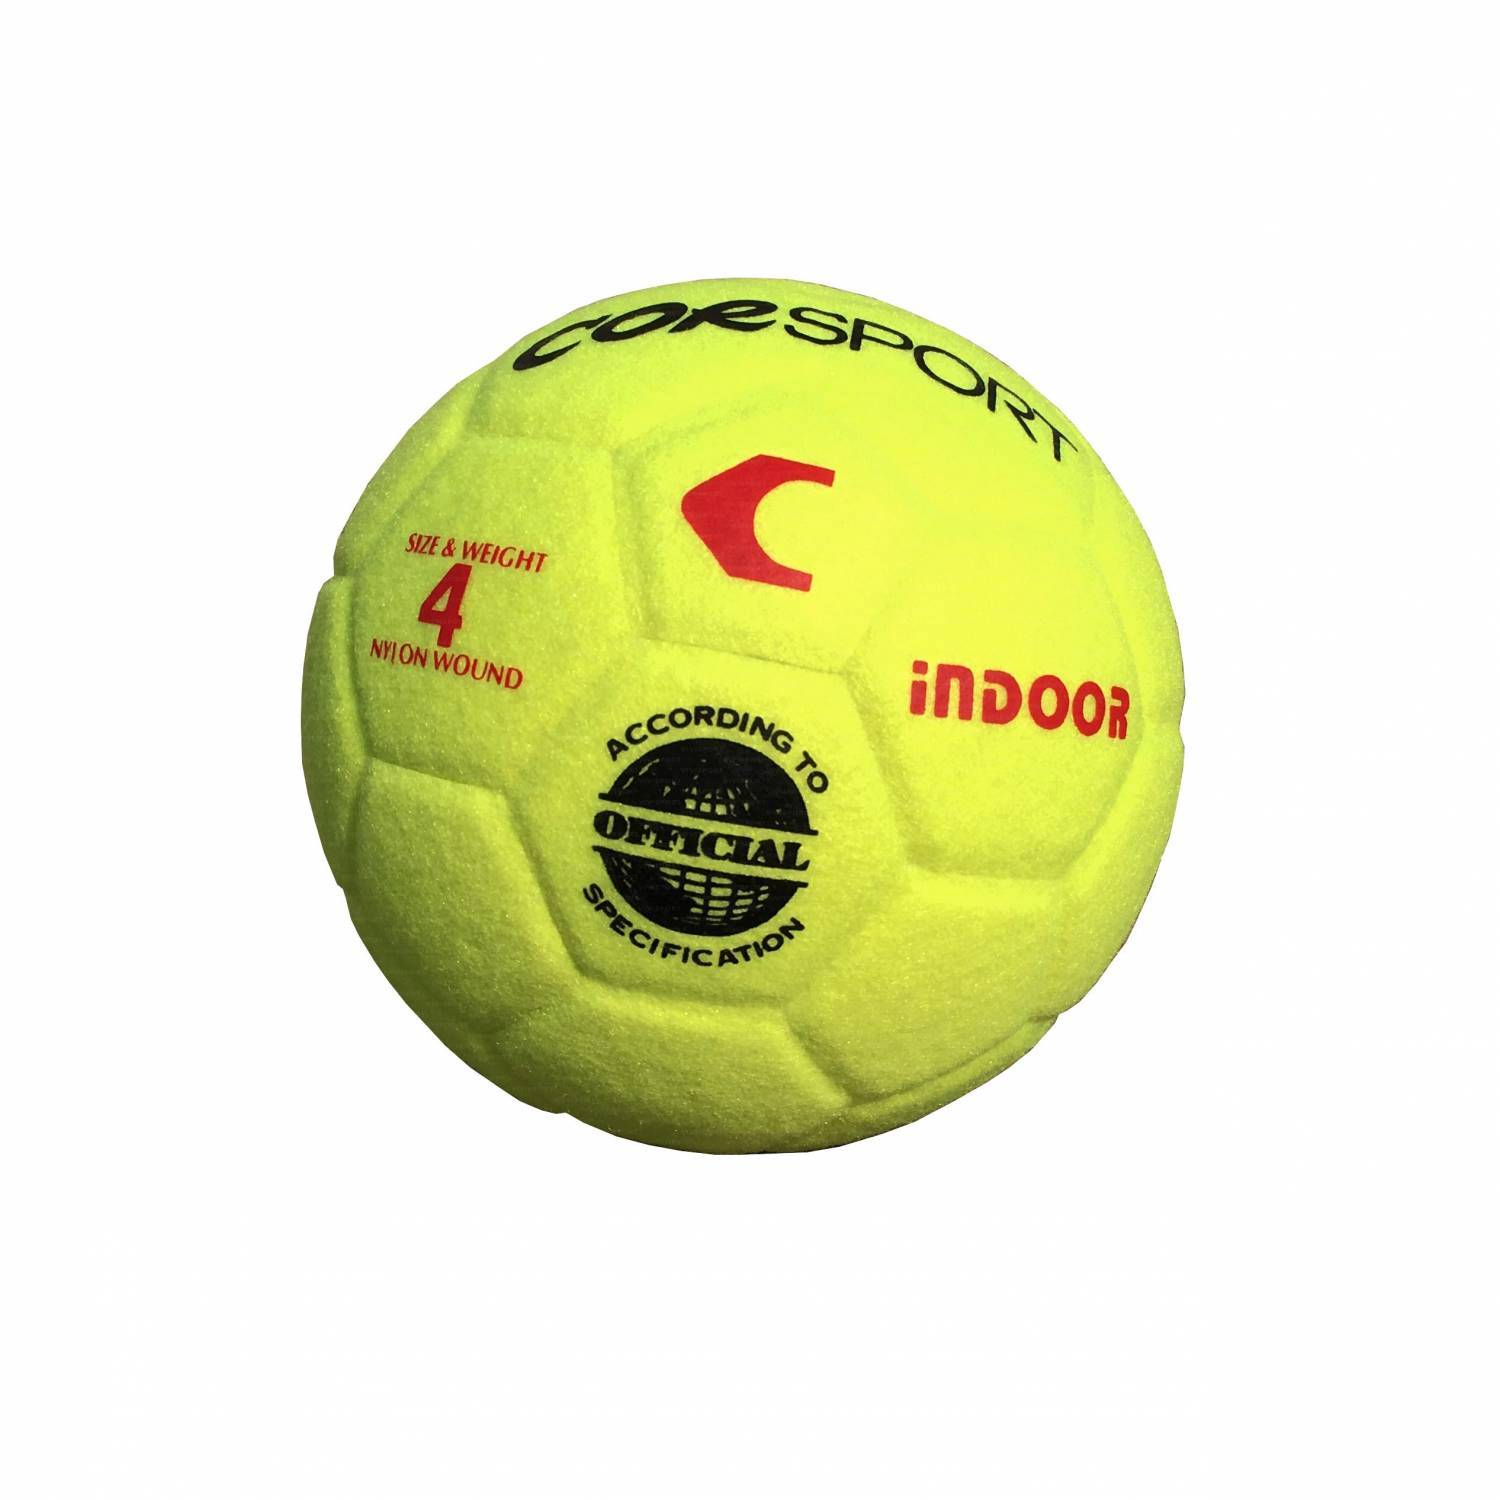 Pallone calcetto indoor n. 4